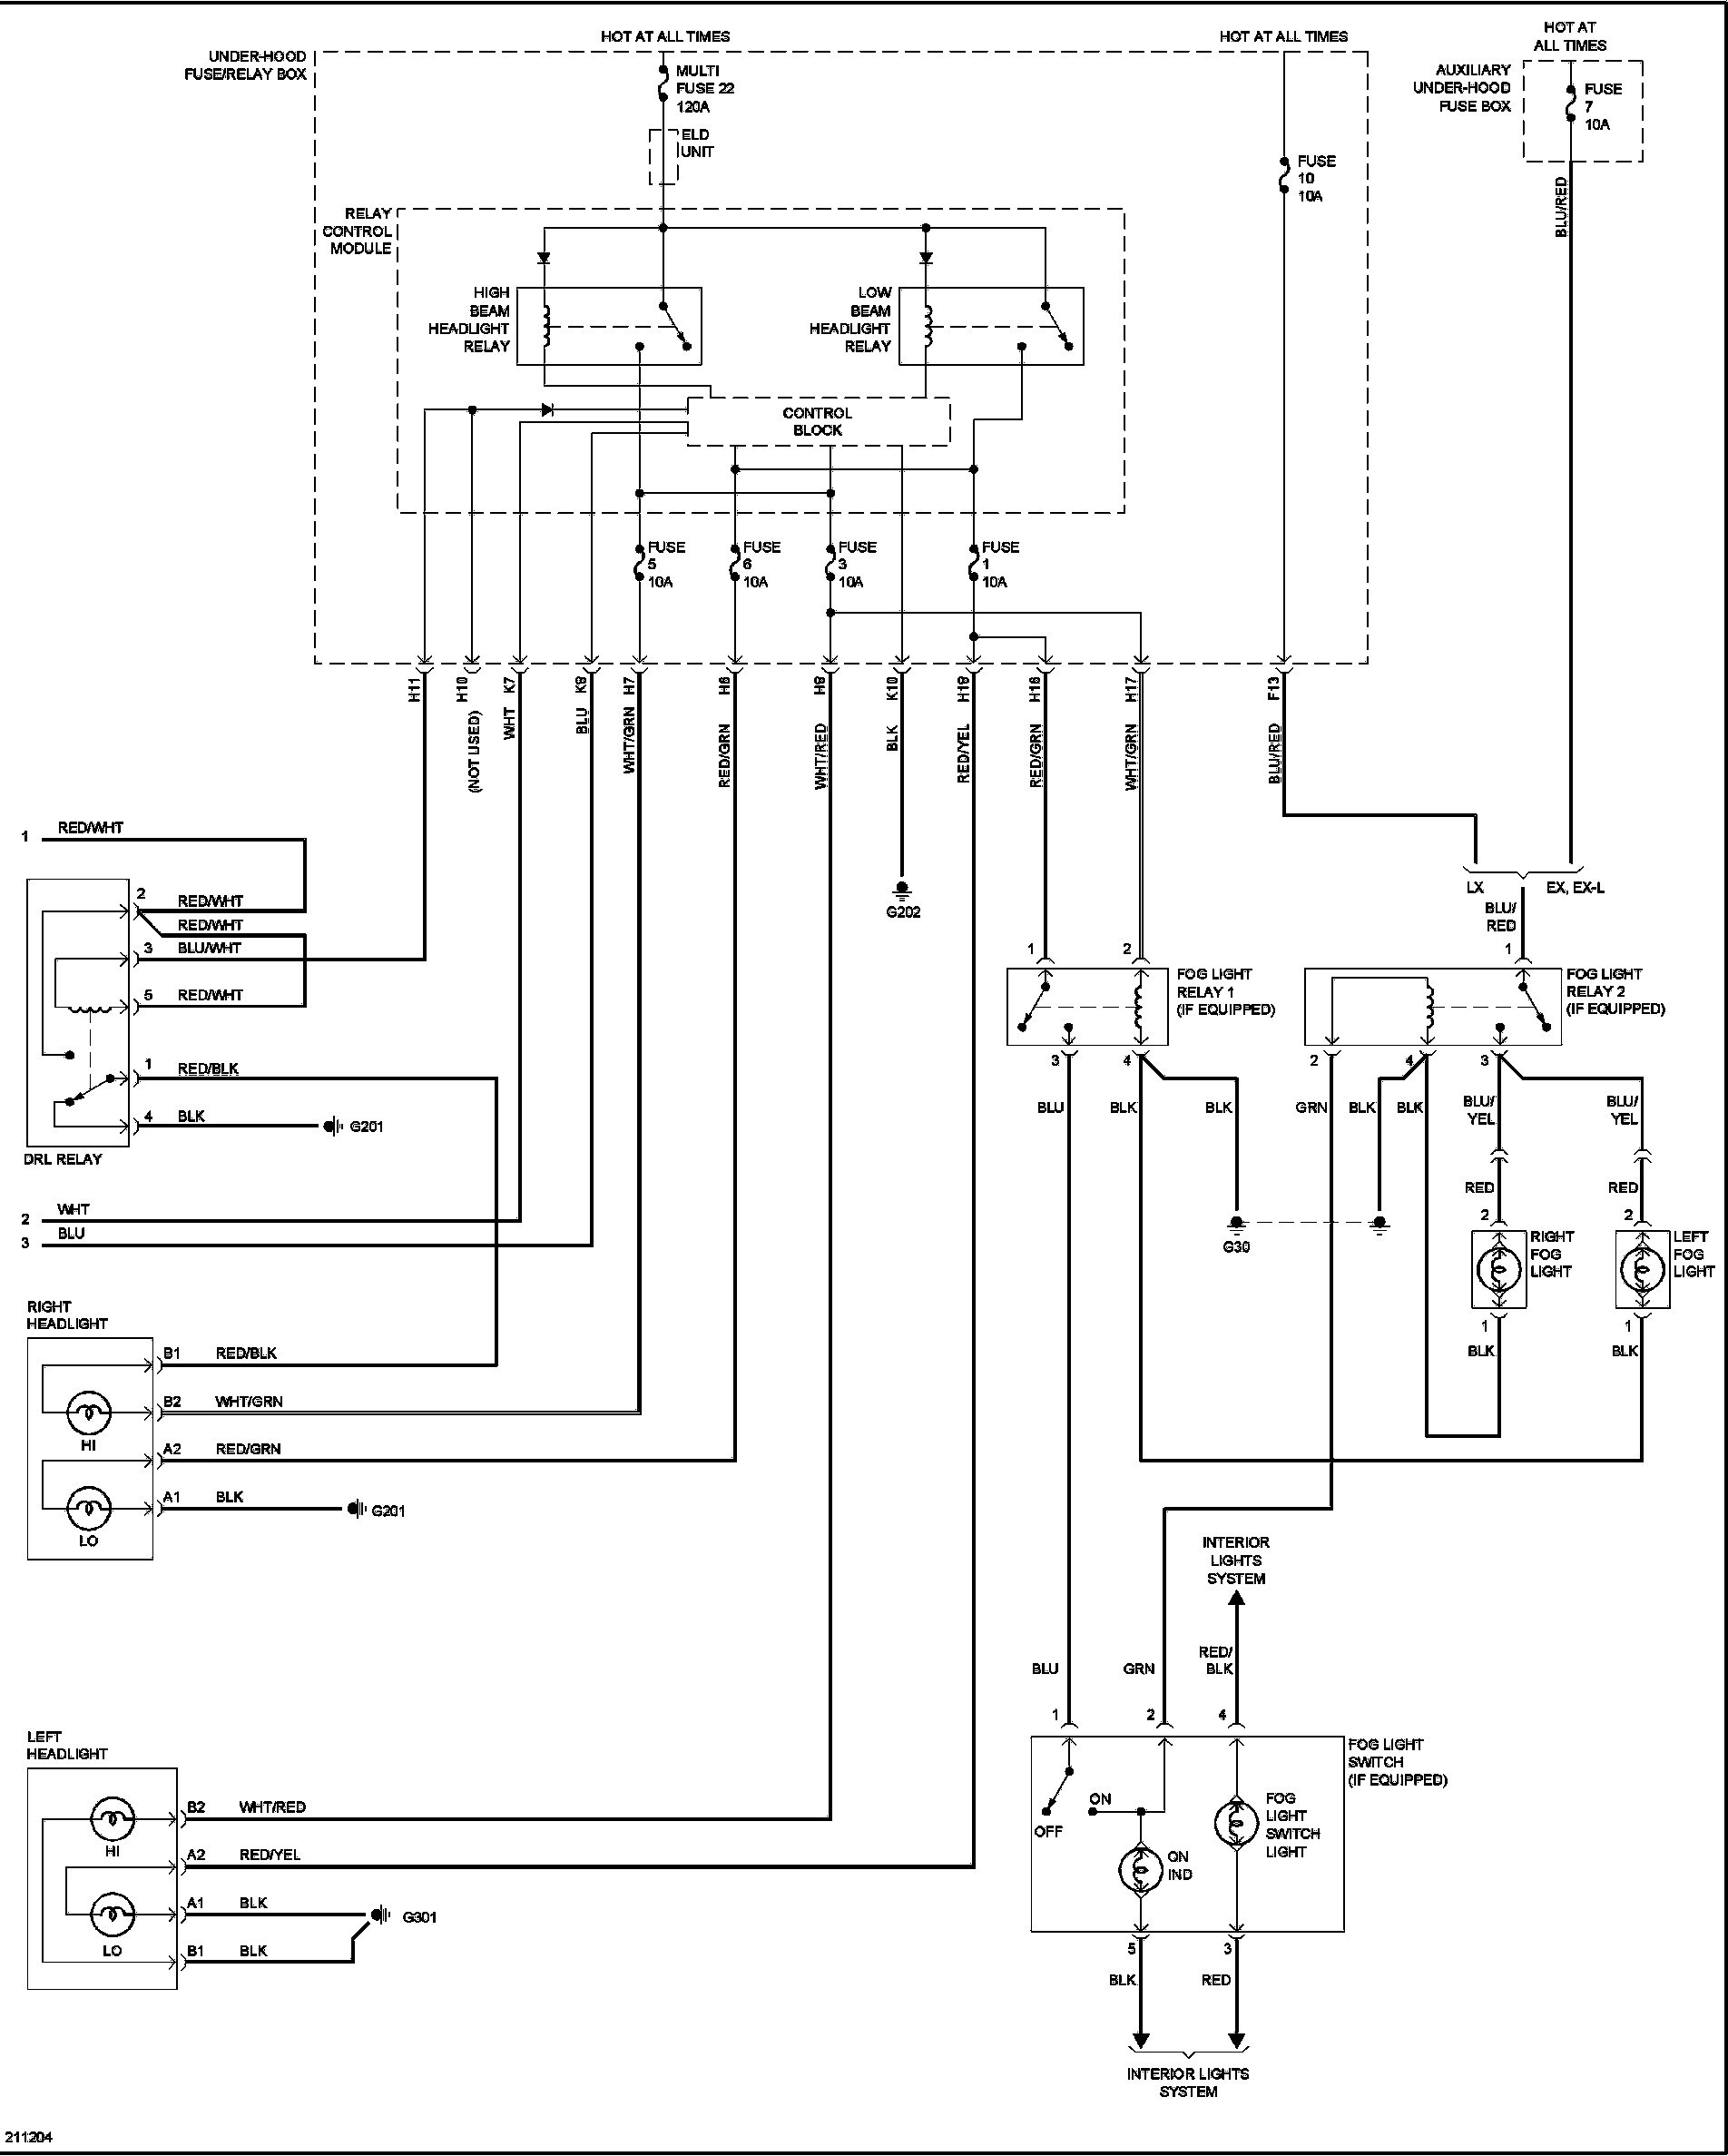 hight resolution of wiring diagram for 2000 honda civic wiring diagram expert 2000 honda 400ex wiring diagram 2000 honda